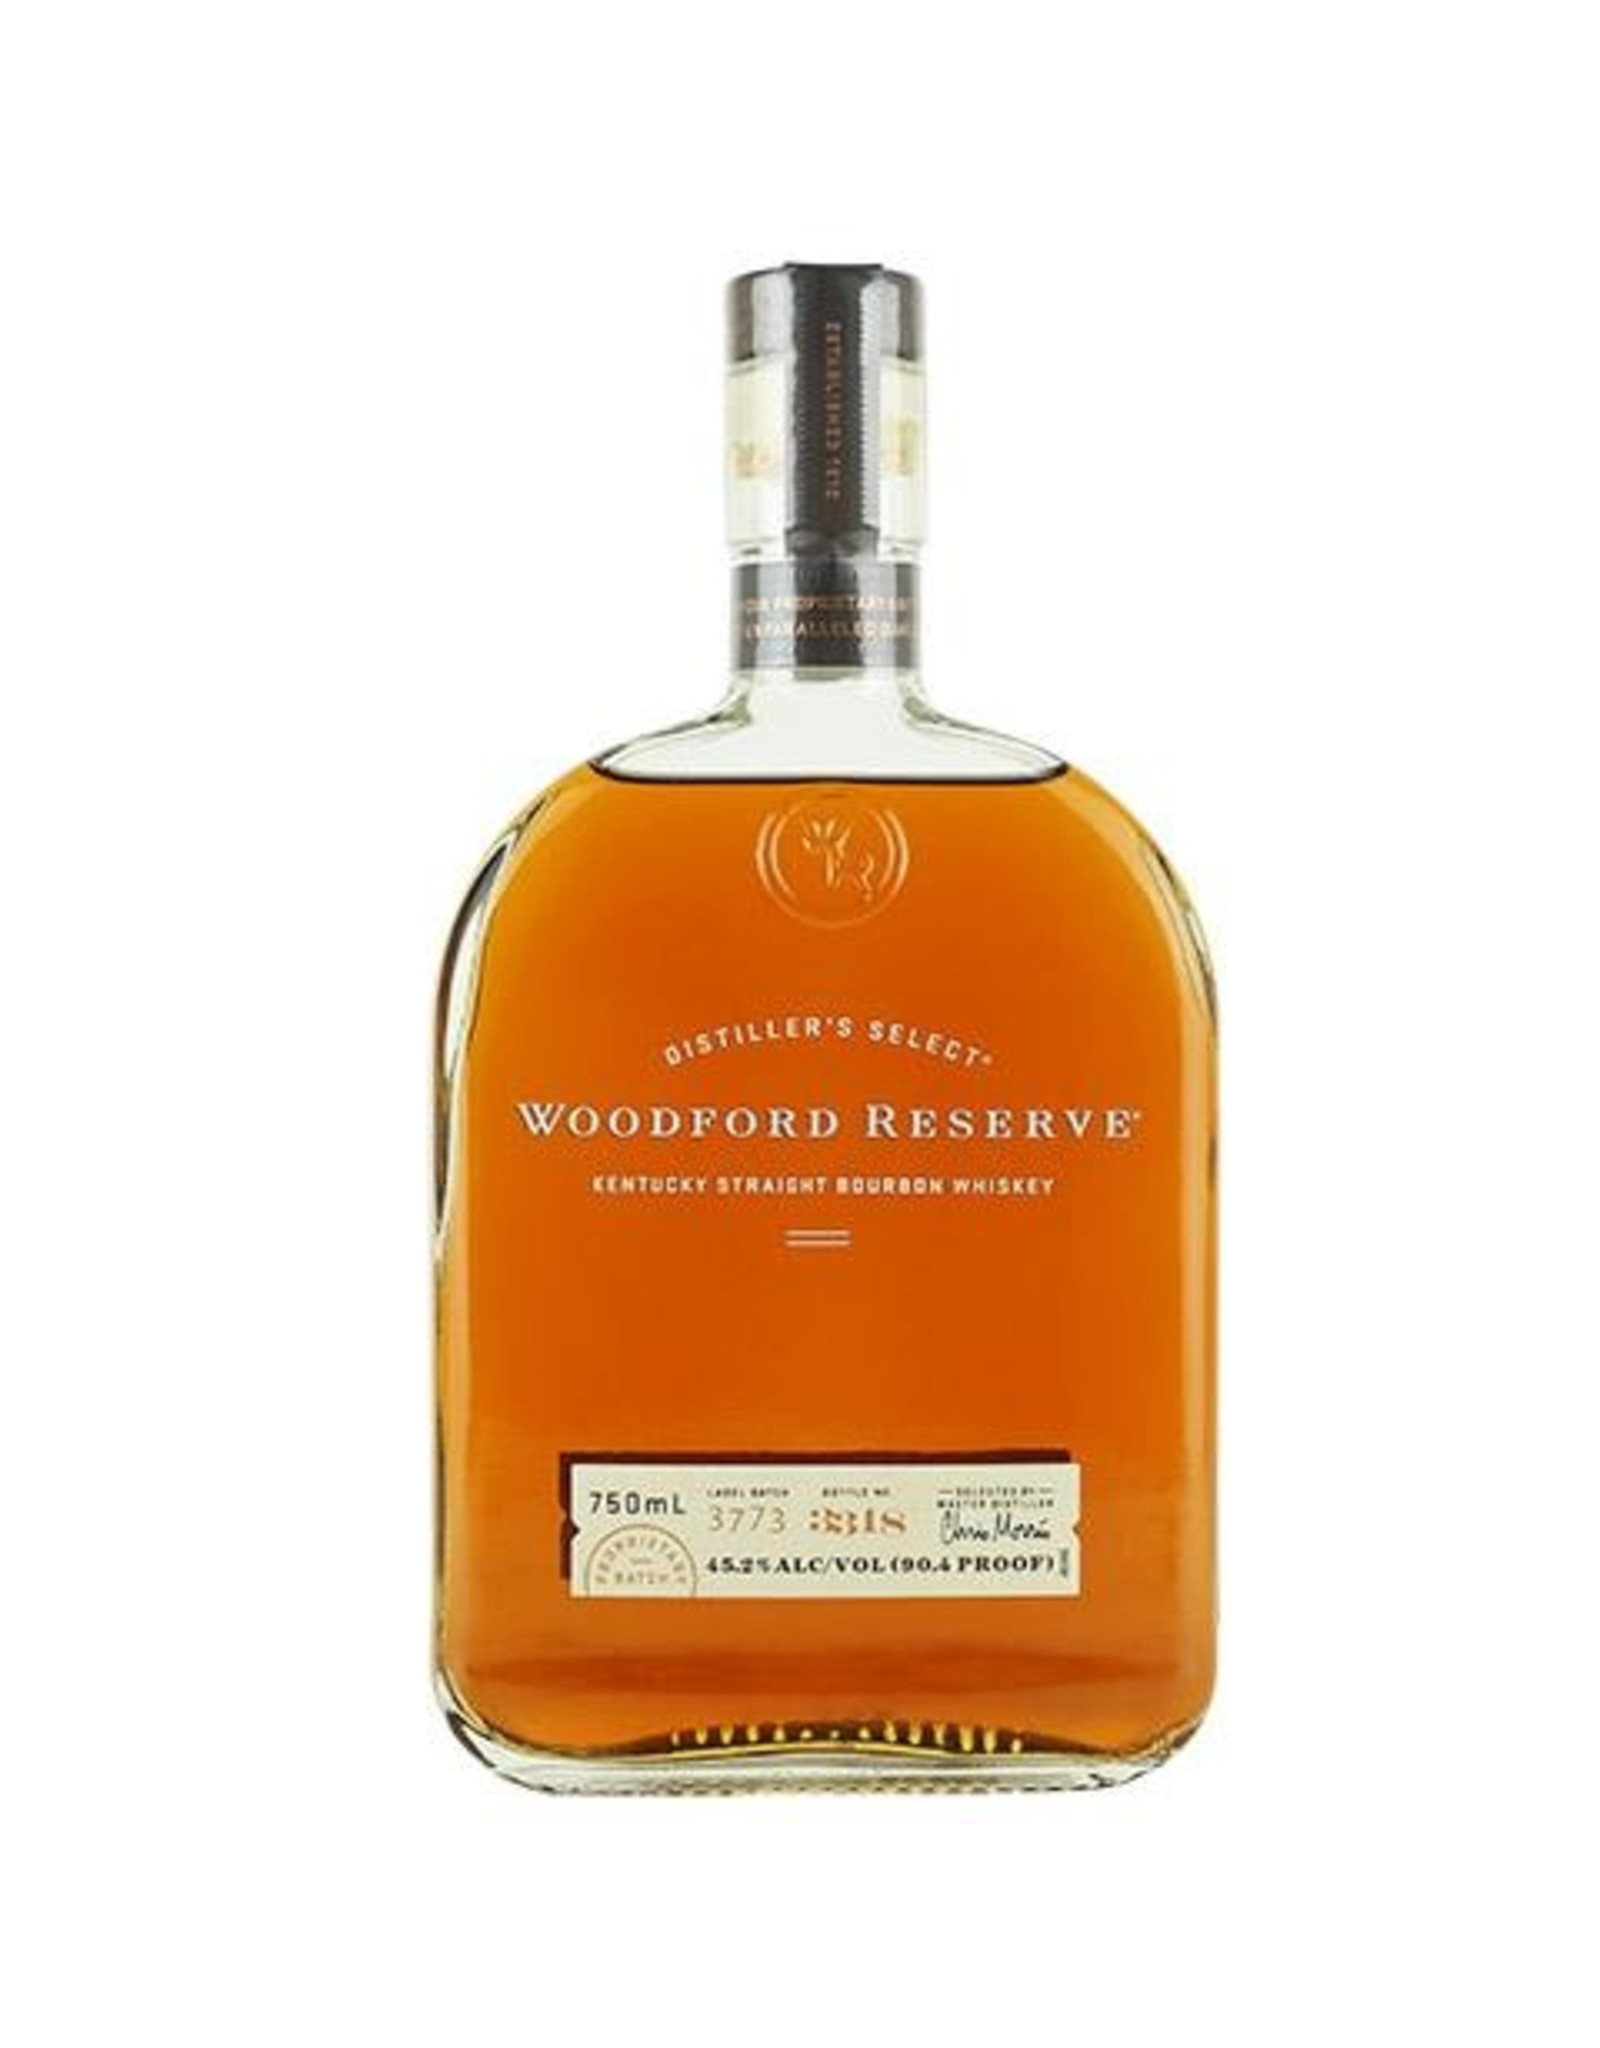 Woodford Woodford Reserve Kentucky Straight